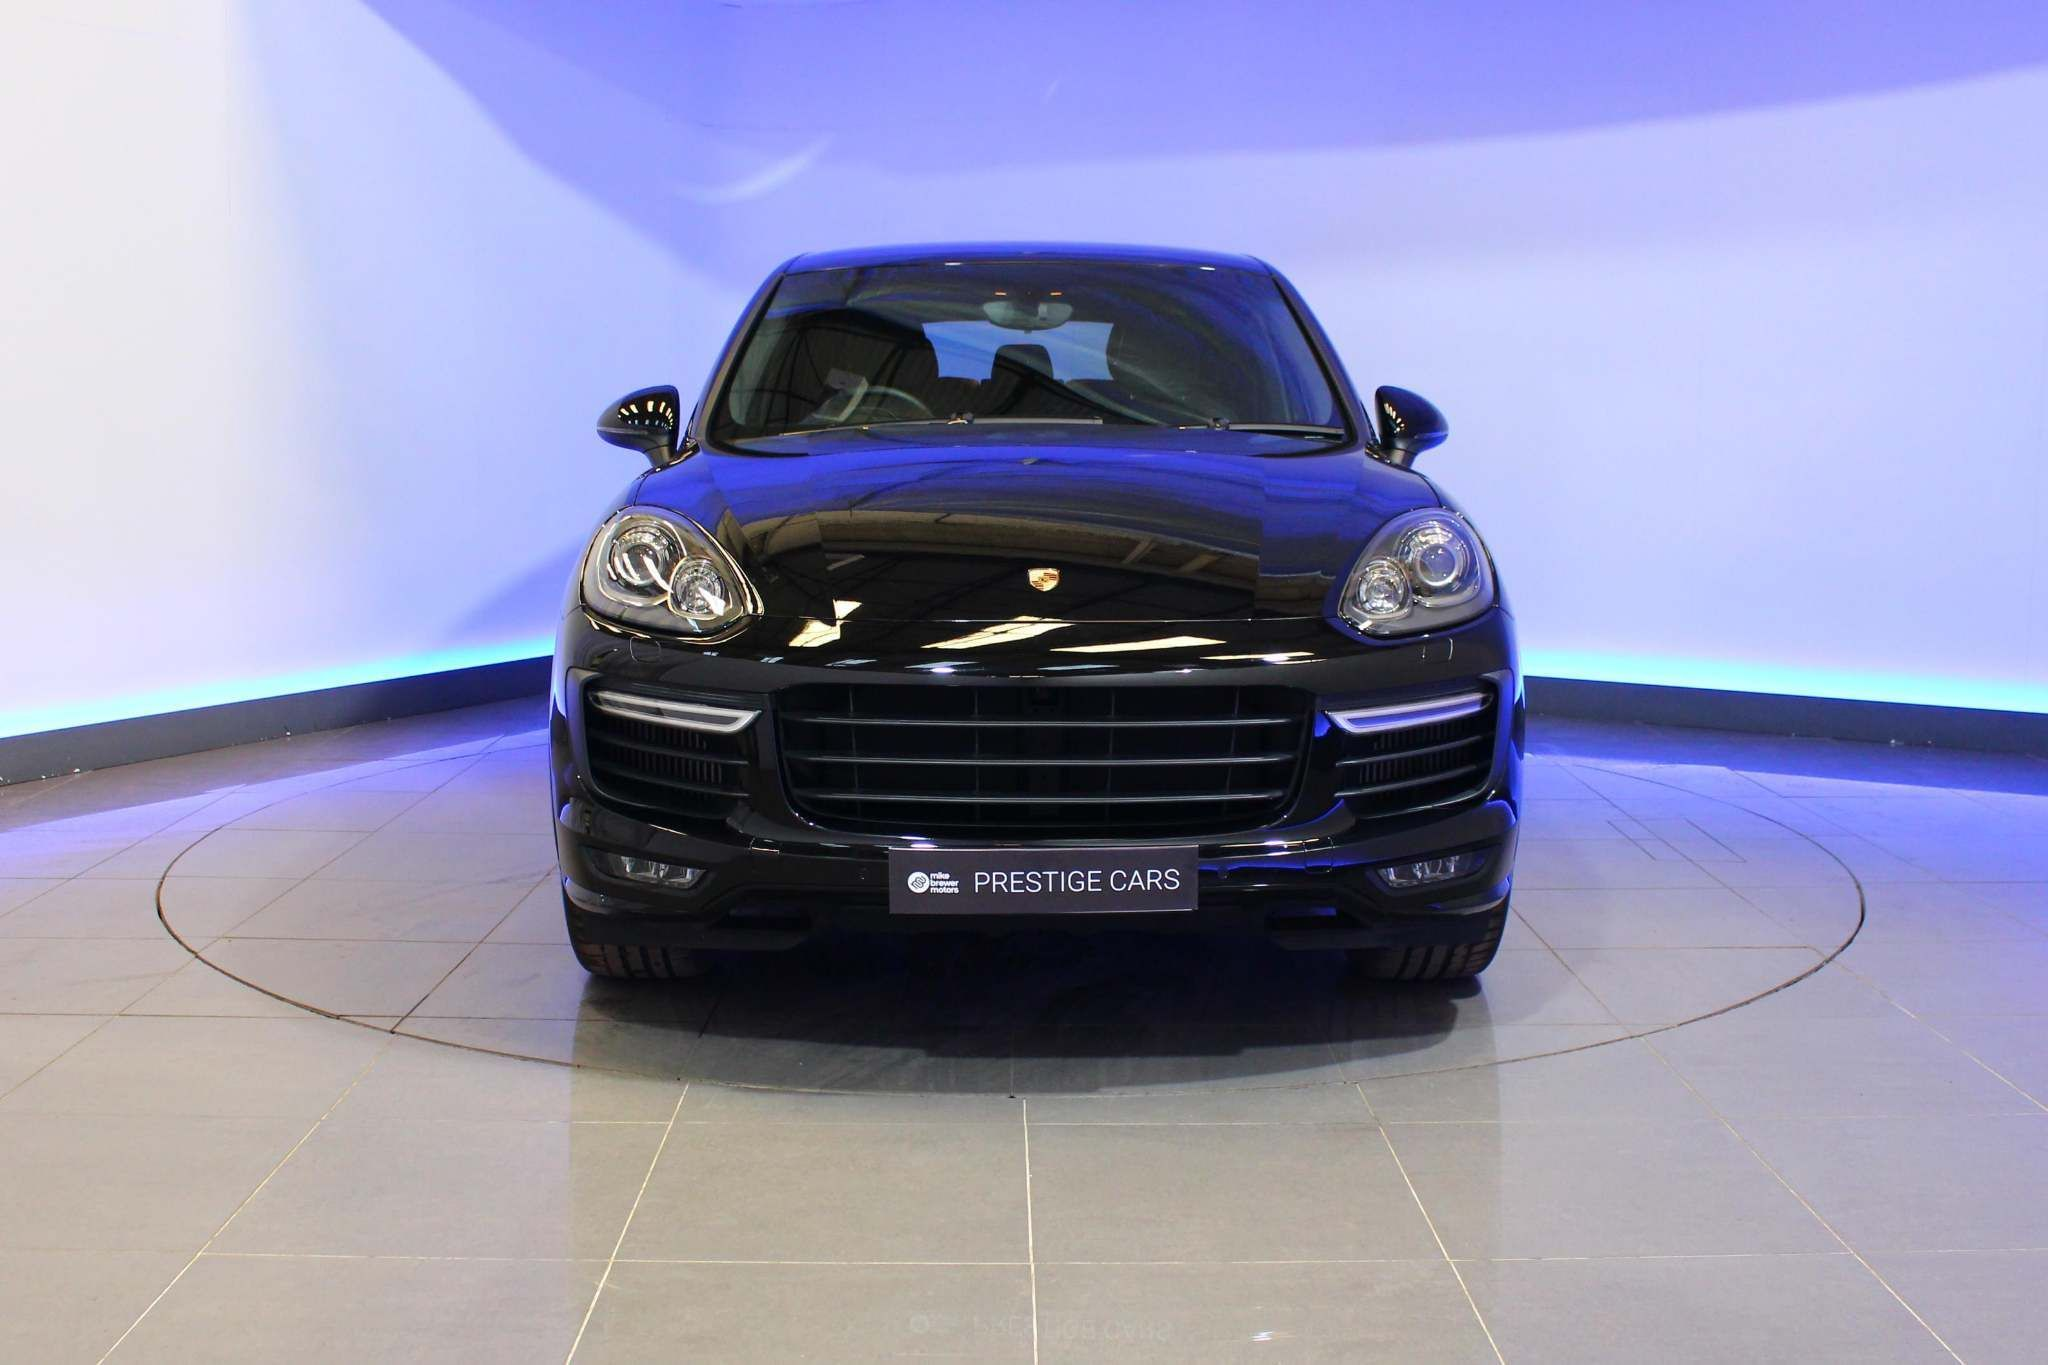 Used Porsche Cayenne 3.6t Gts Tiptronic 4wd (s/s) 5dr